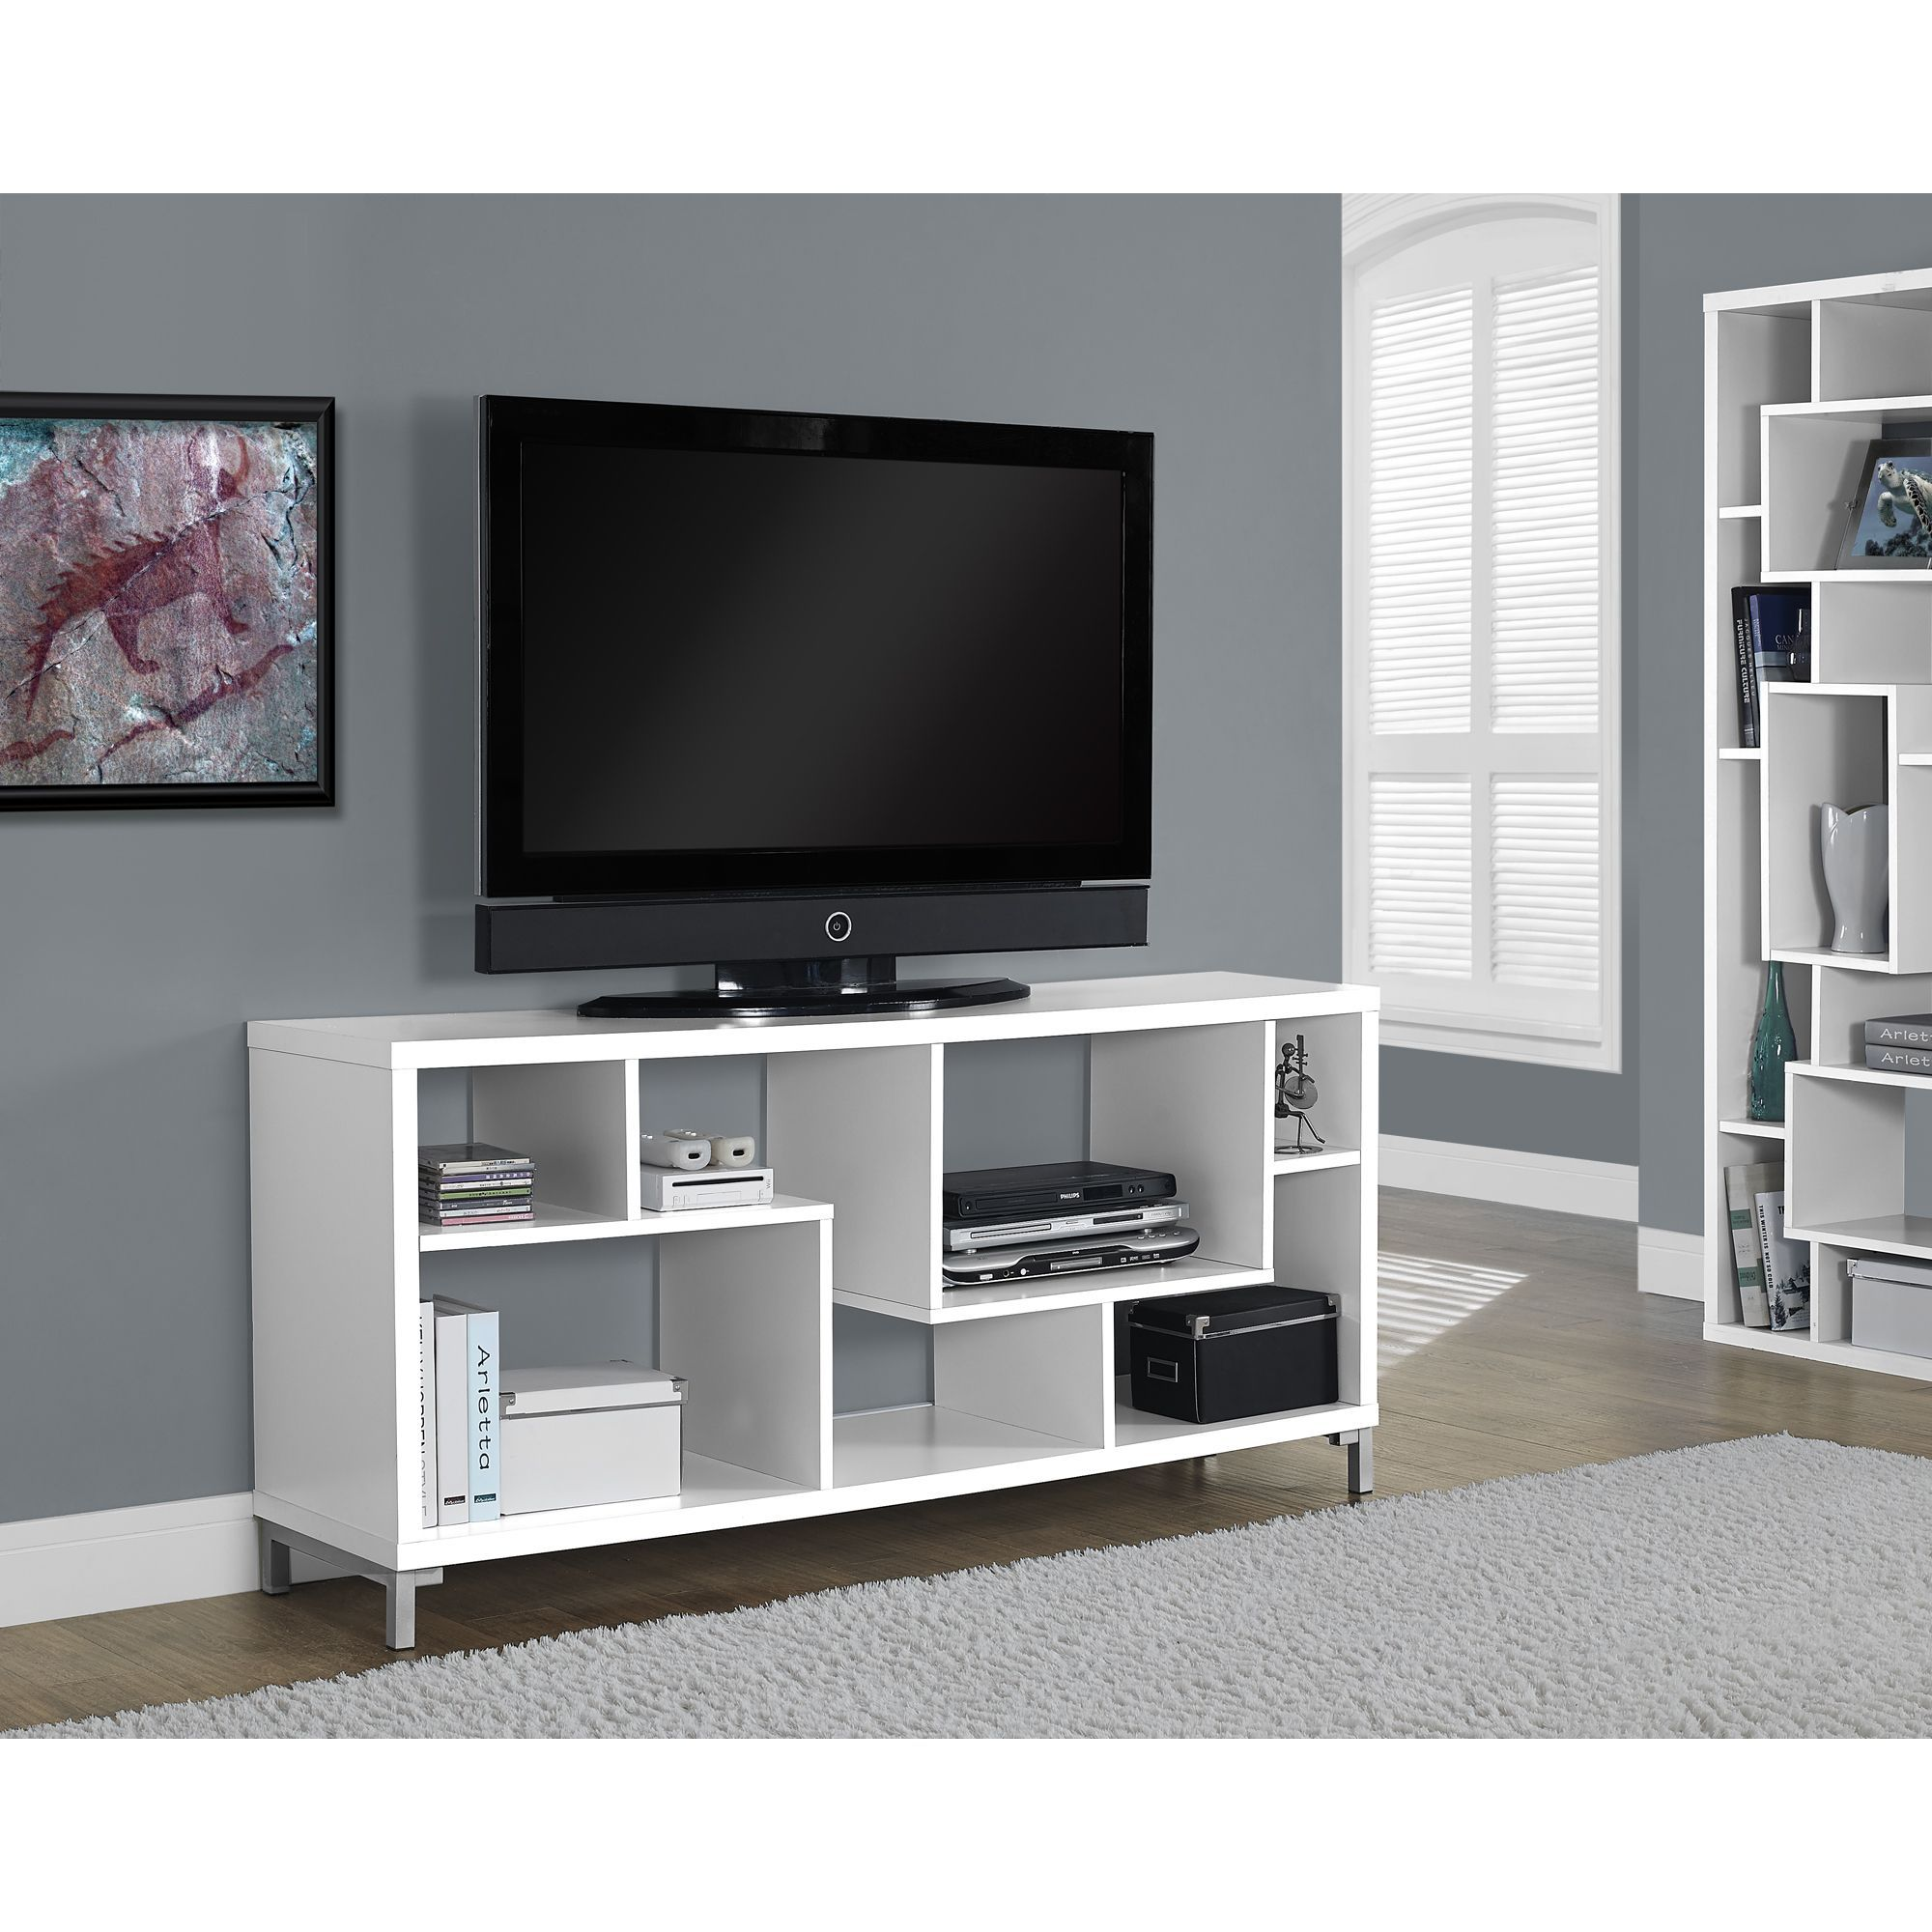 White Hollow core TV Console Overstock Shopping